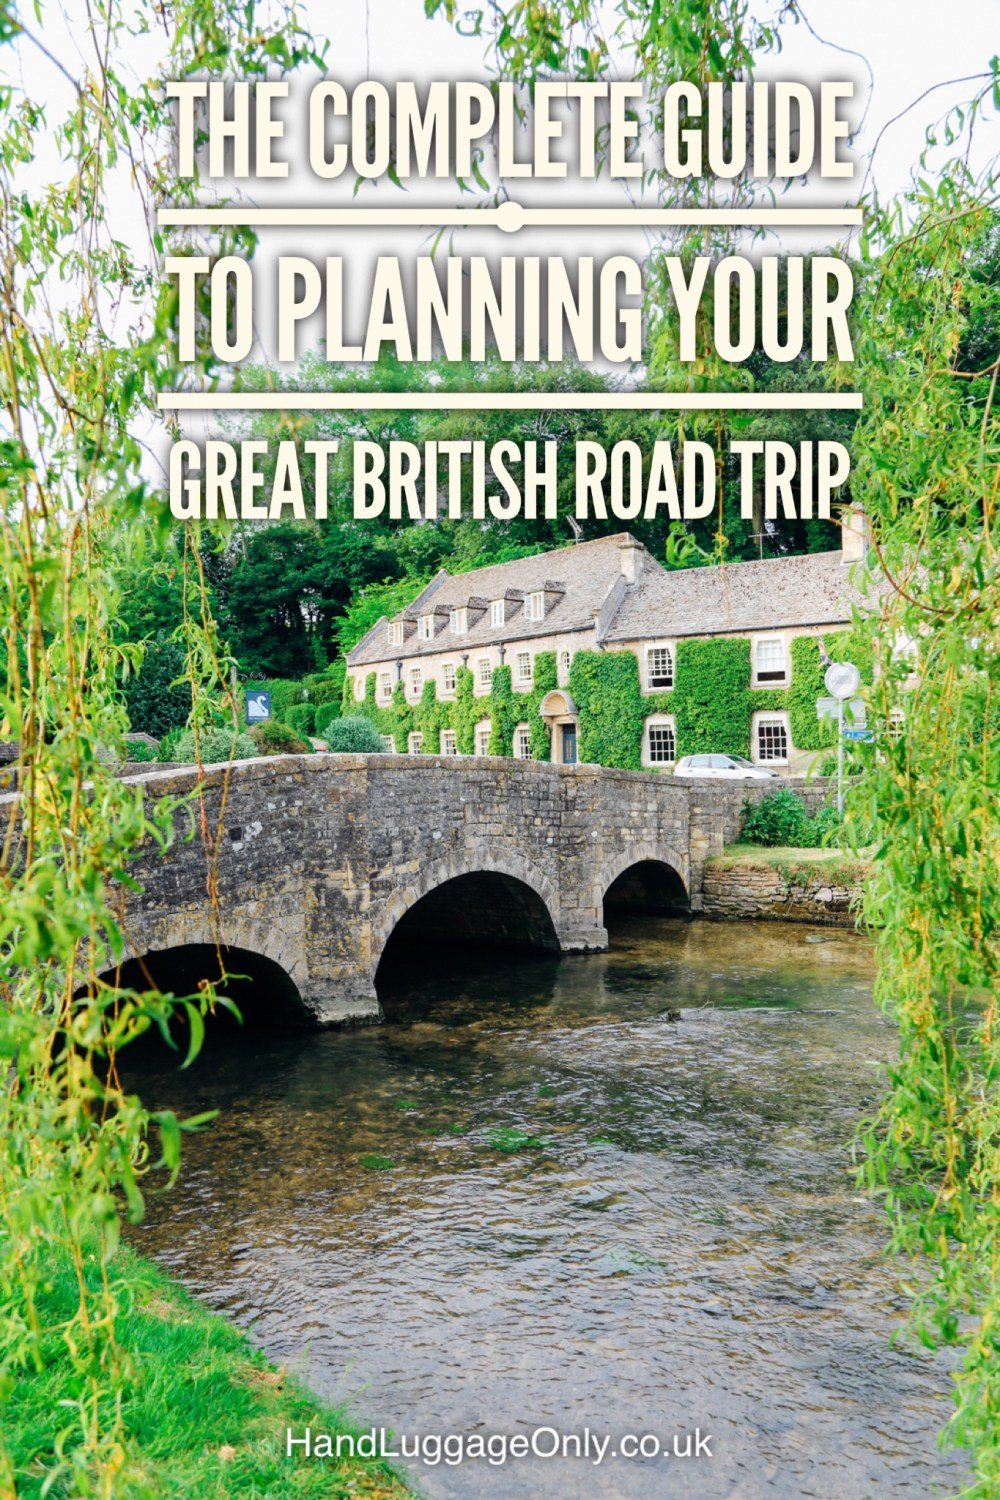 The Complete Guide To Planning Your Great British Road Trip (2)